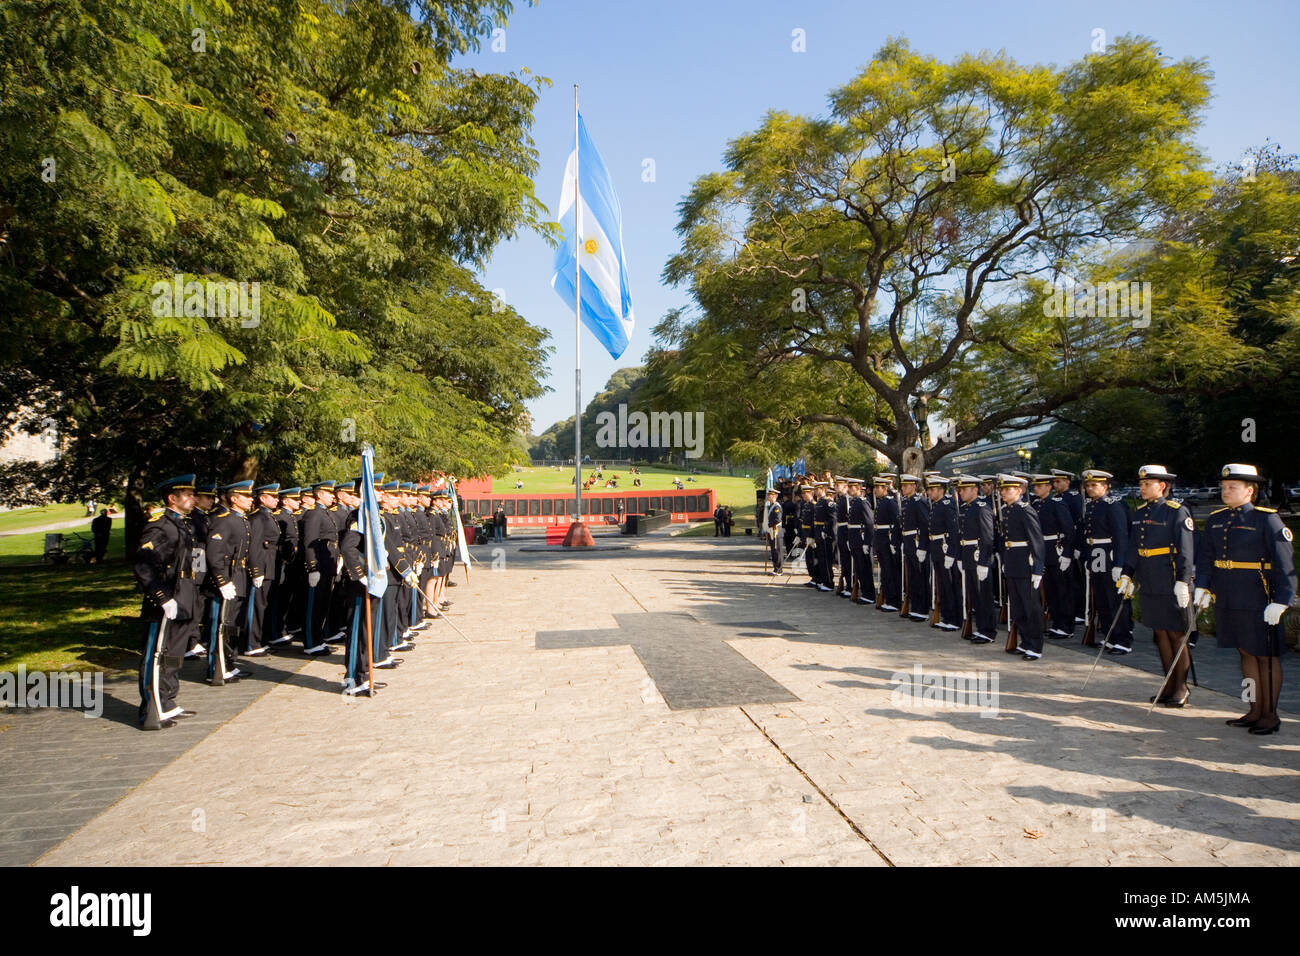 https://c7.alamy.com/comp/AM5JMA/monumento-a-los-caidos-en-malvinas-buenos-aires-remembrance-day-at-AM5JMA.jpg